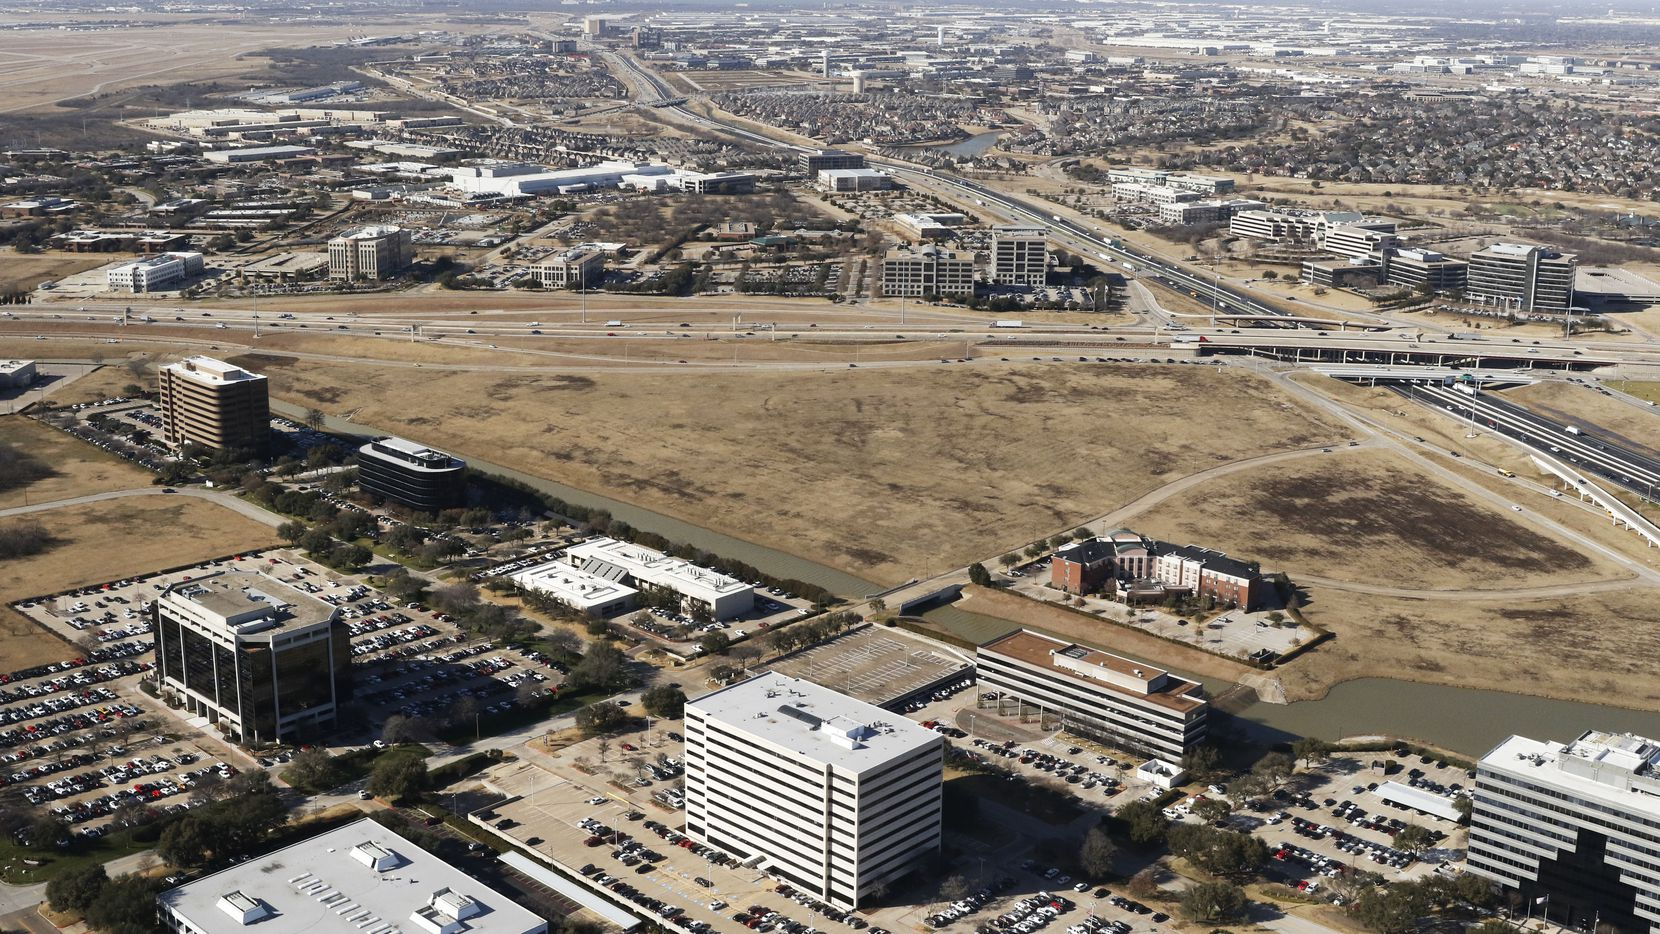 Star Park is being built on the vacant corner of Highways 114 and 161 in Las Colinas in Irving,